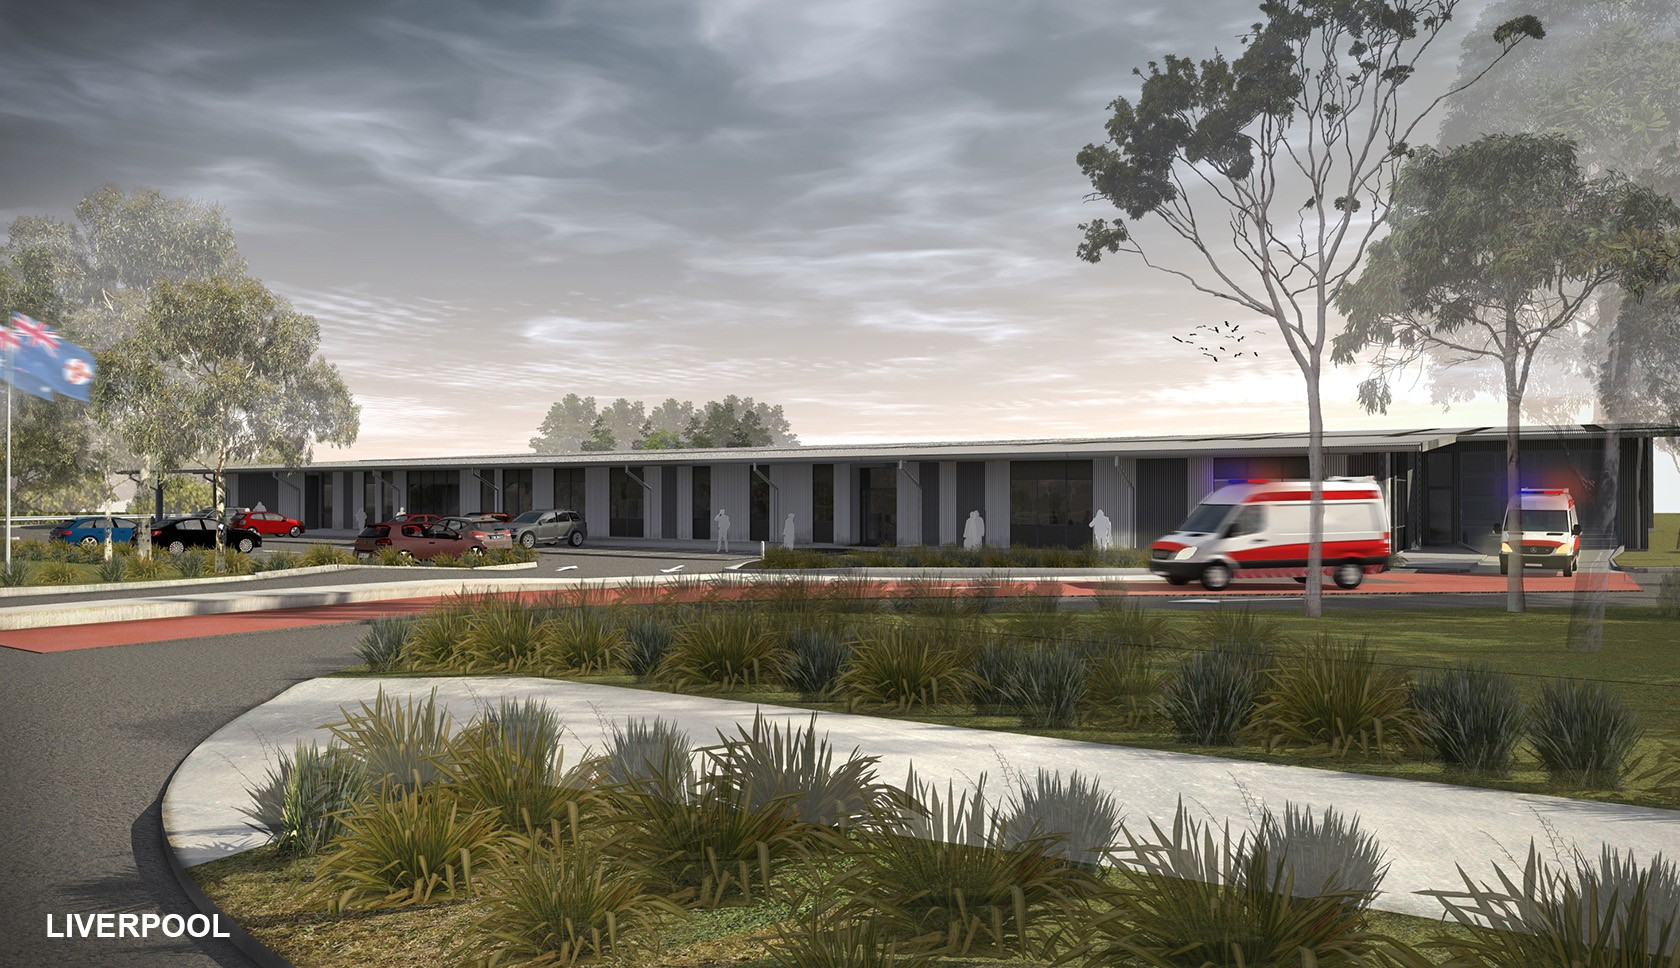 NSW ambulance supercentres western Sydney architectural drawing view from the entrance